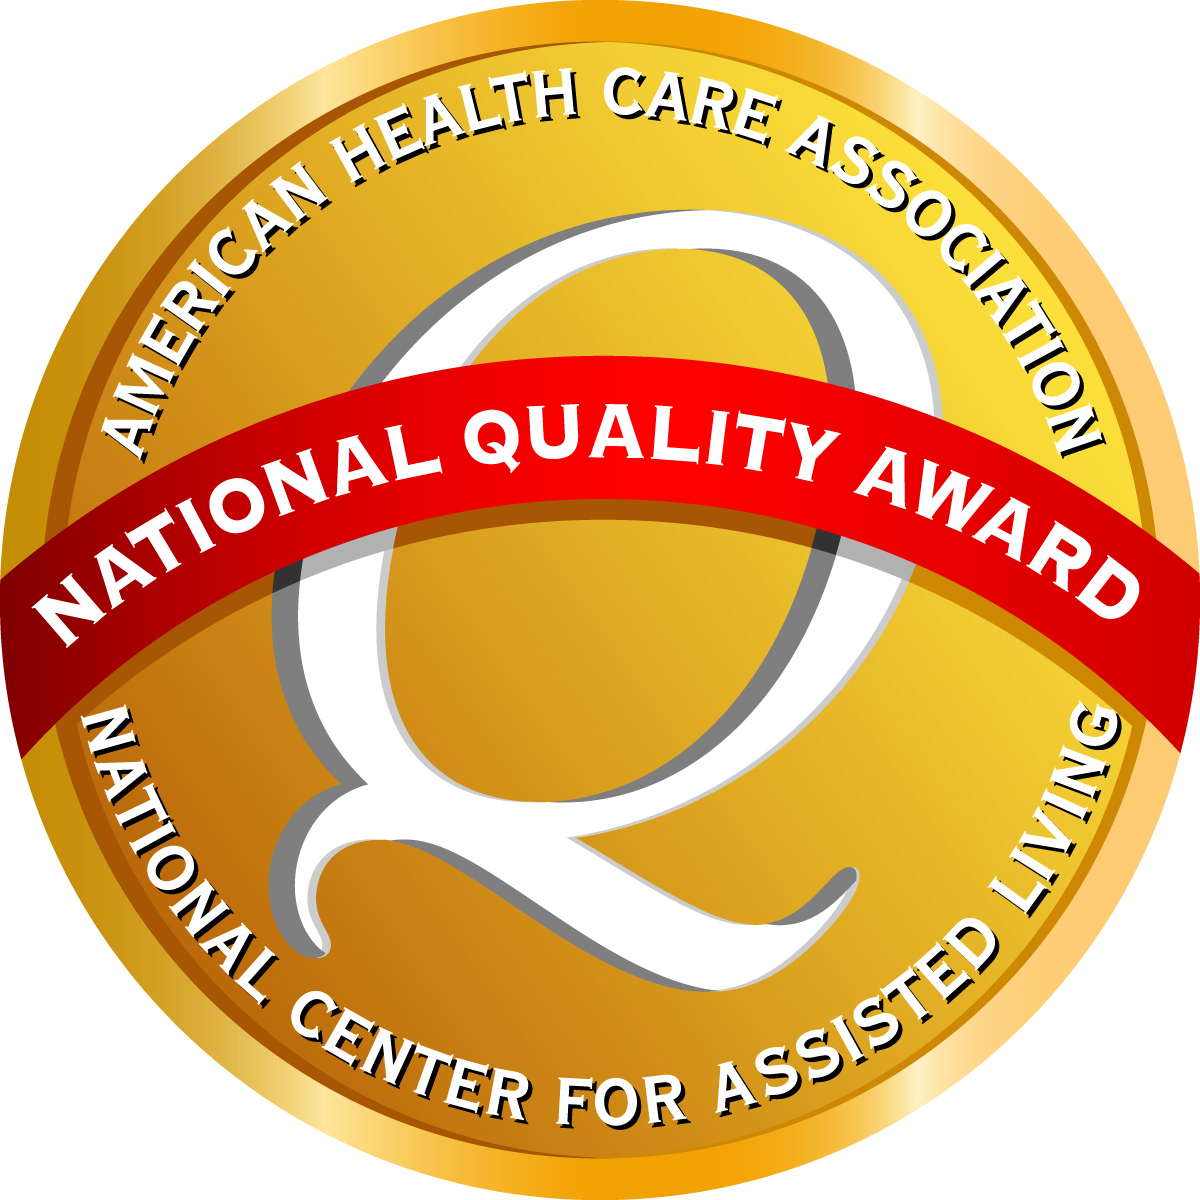 ahca qualityaward logo